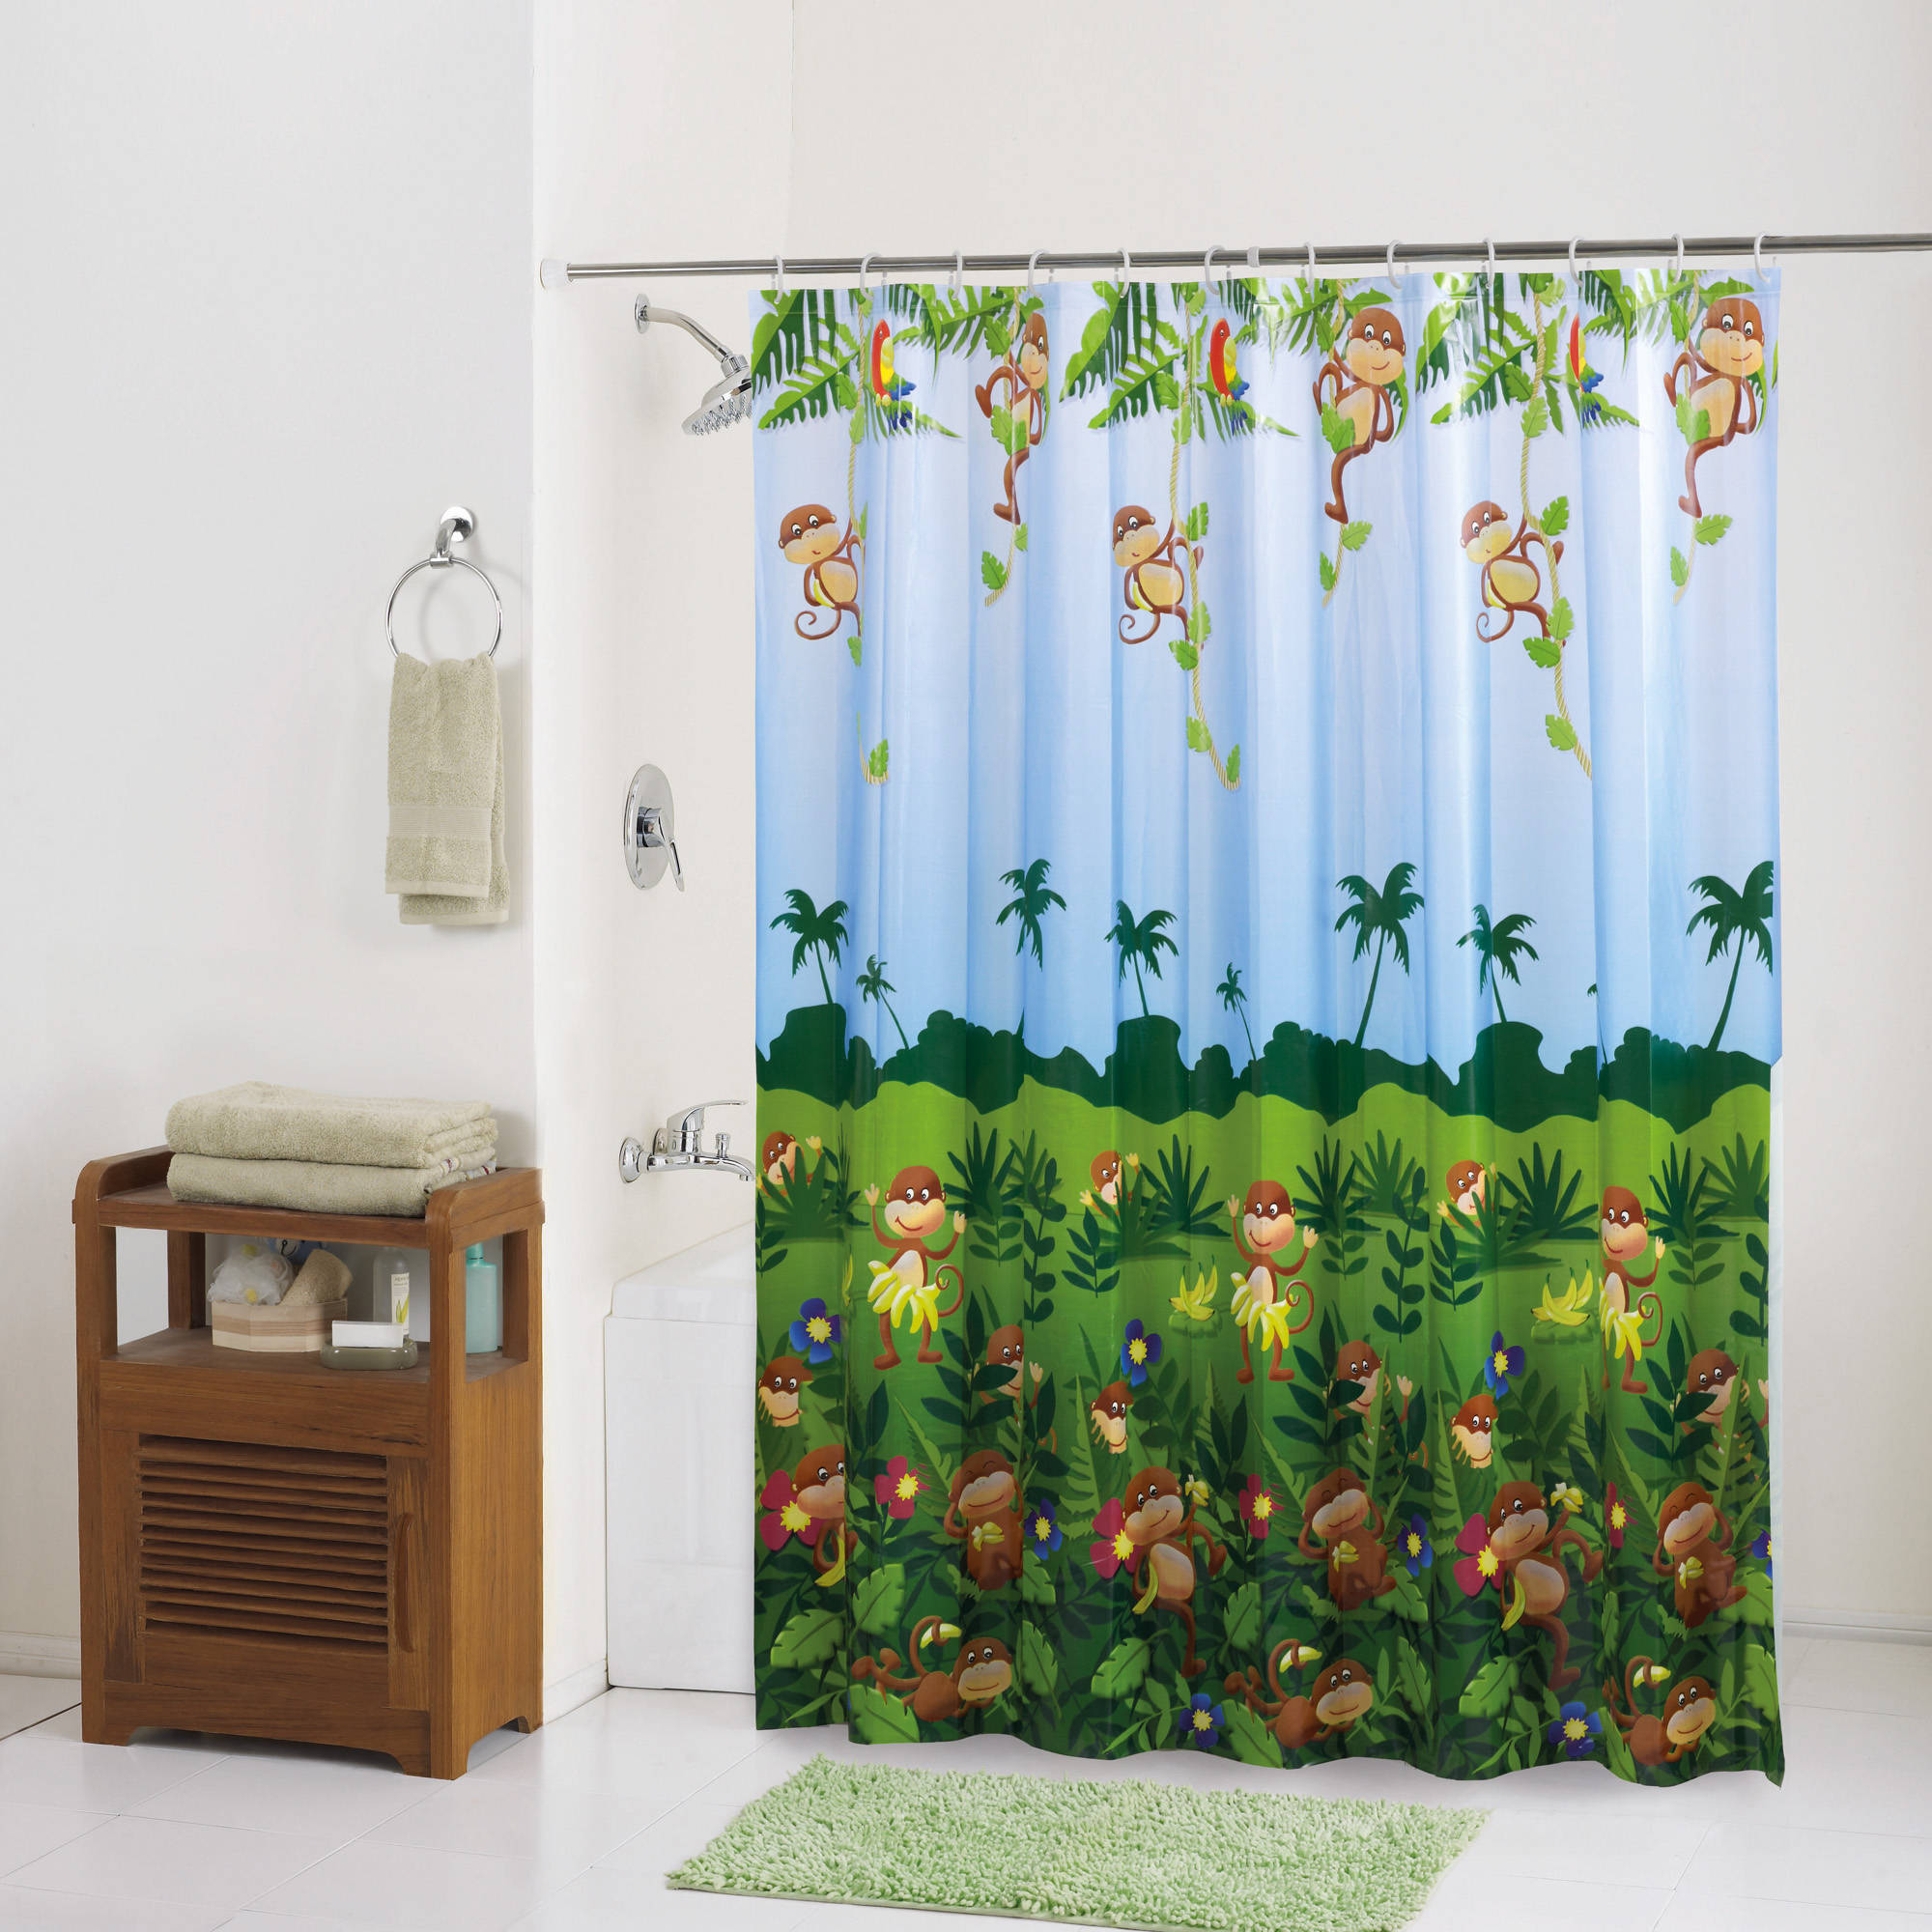 PEVA Shower Curtain, Monkey